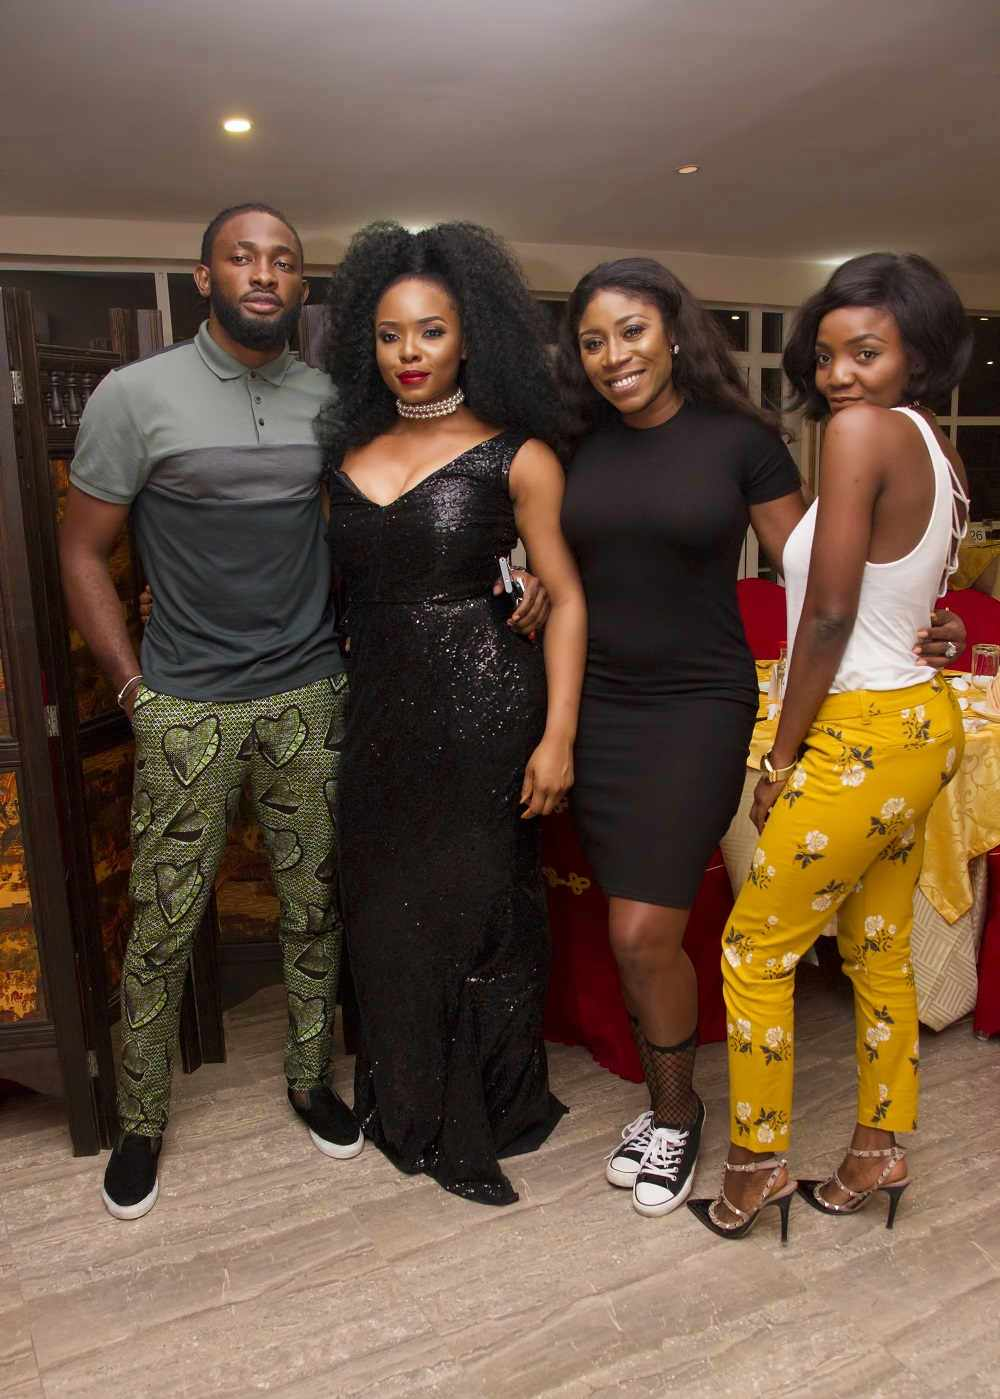 Adekunle Gold, DJ Cuppy, Simi join Yemi Alade for Celebratory Birthday Dinner